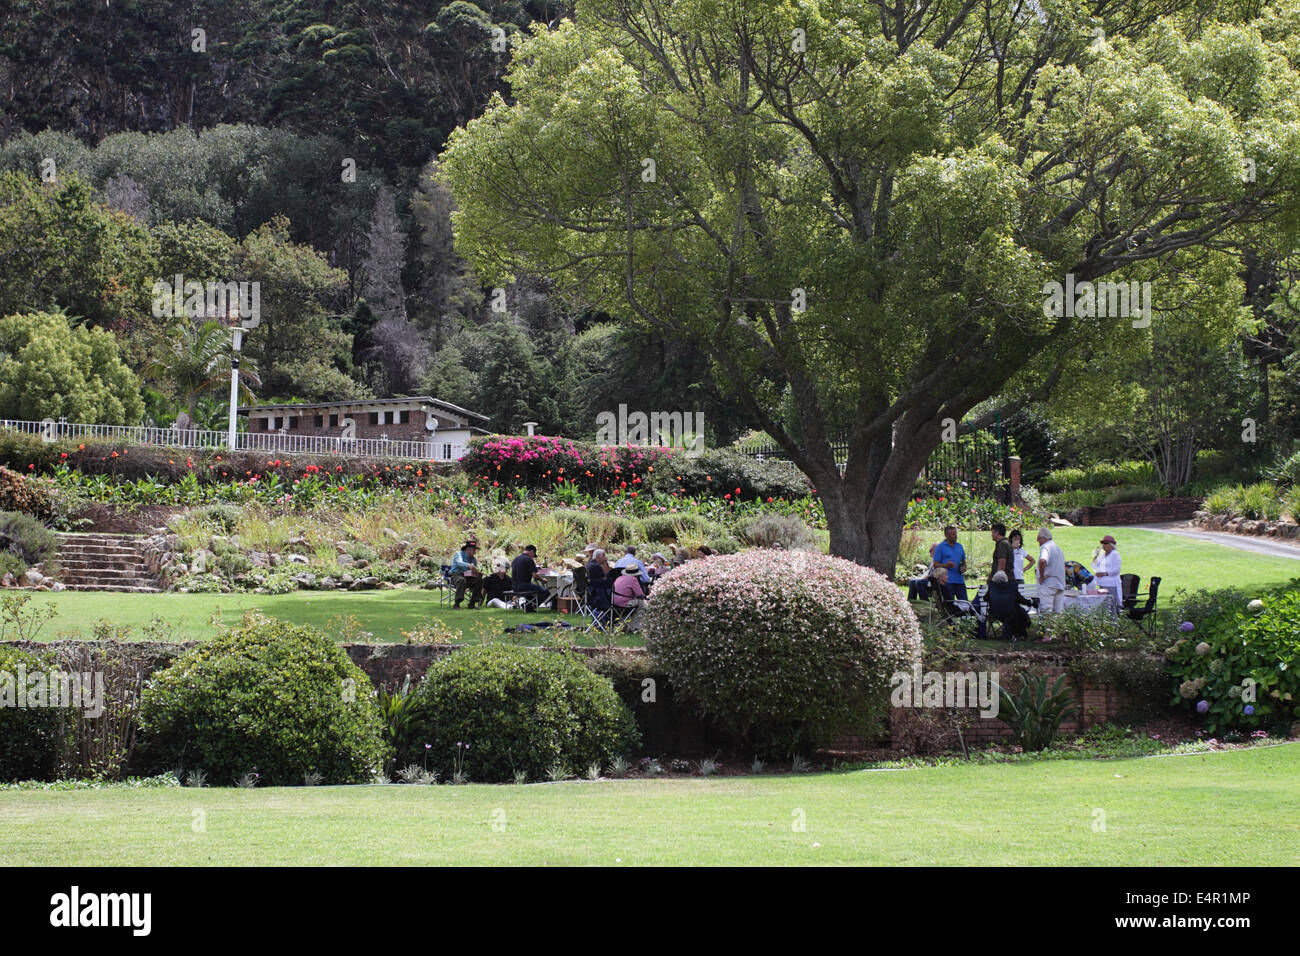 People gather for a picnic under a tree, Harcroft House, Upper Constantia, South Africa - Stock Image